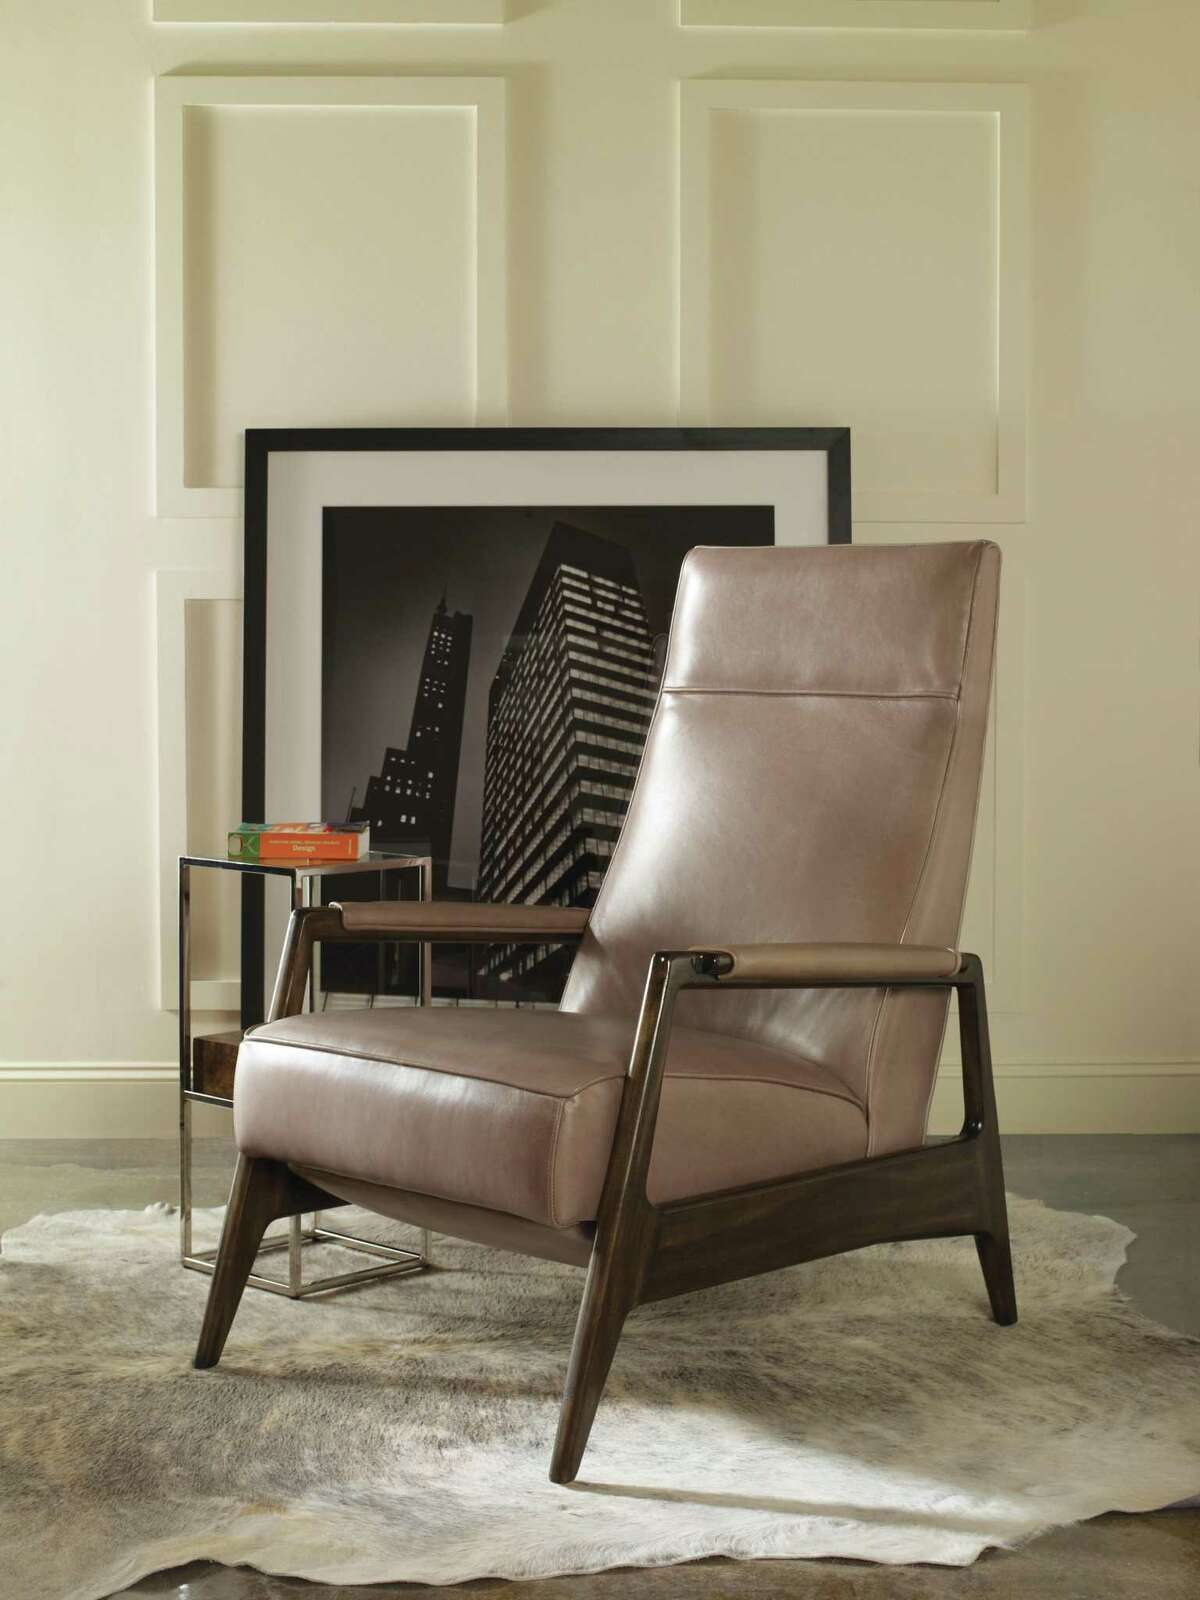 Vanguard's Woodley recliner, available in Houston at James Craig Furnishings at the Houston Design Center.